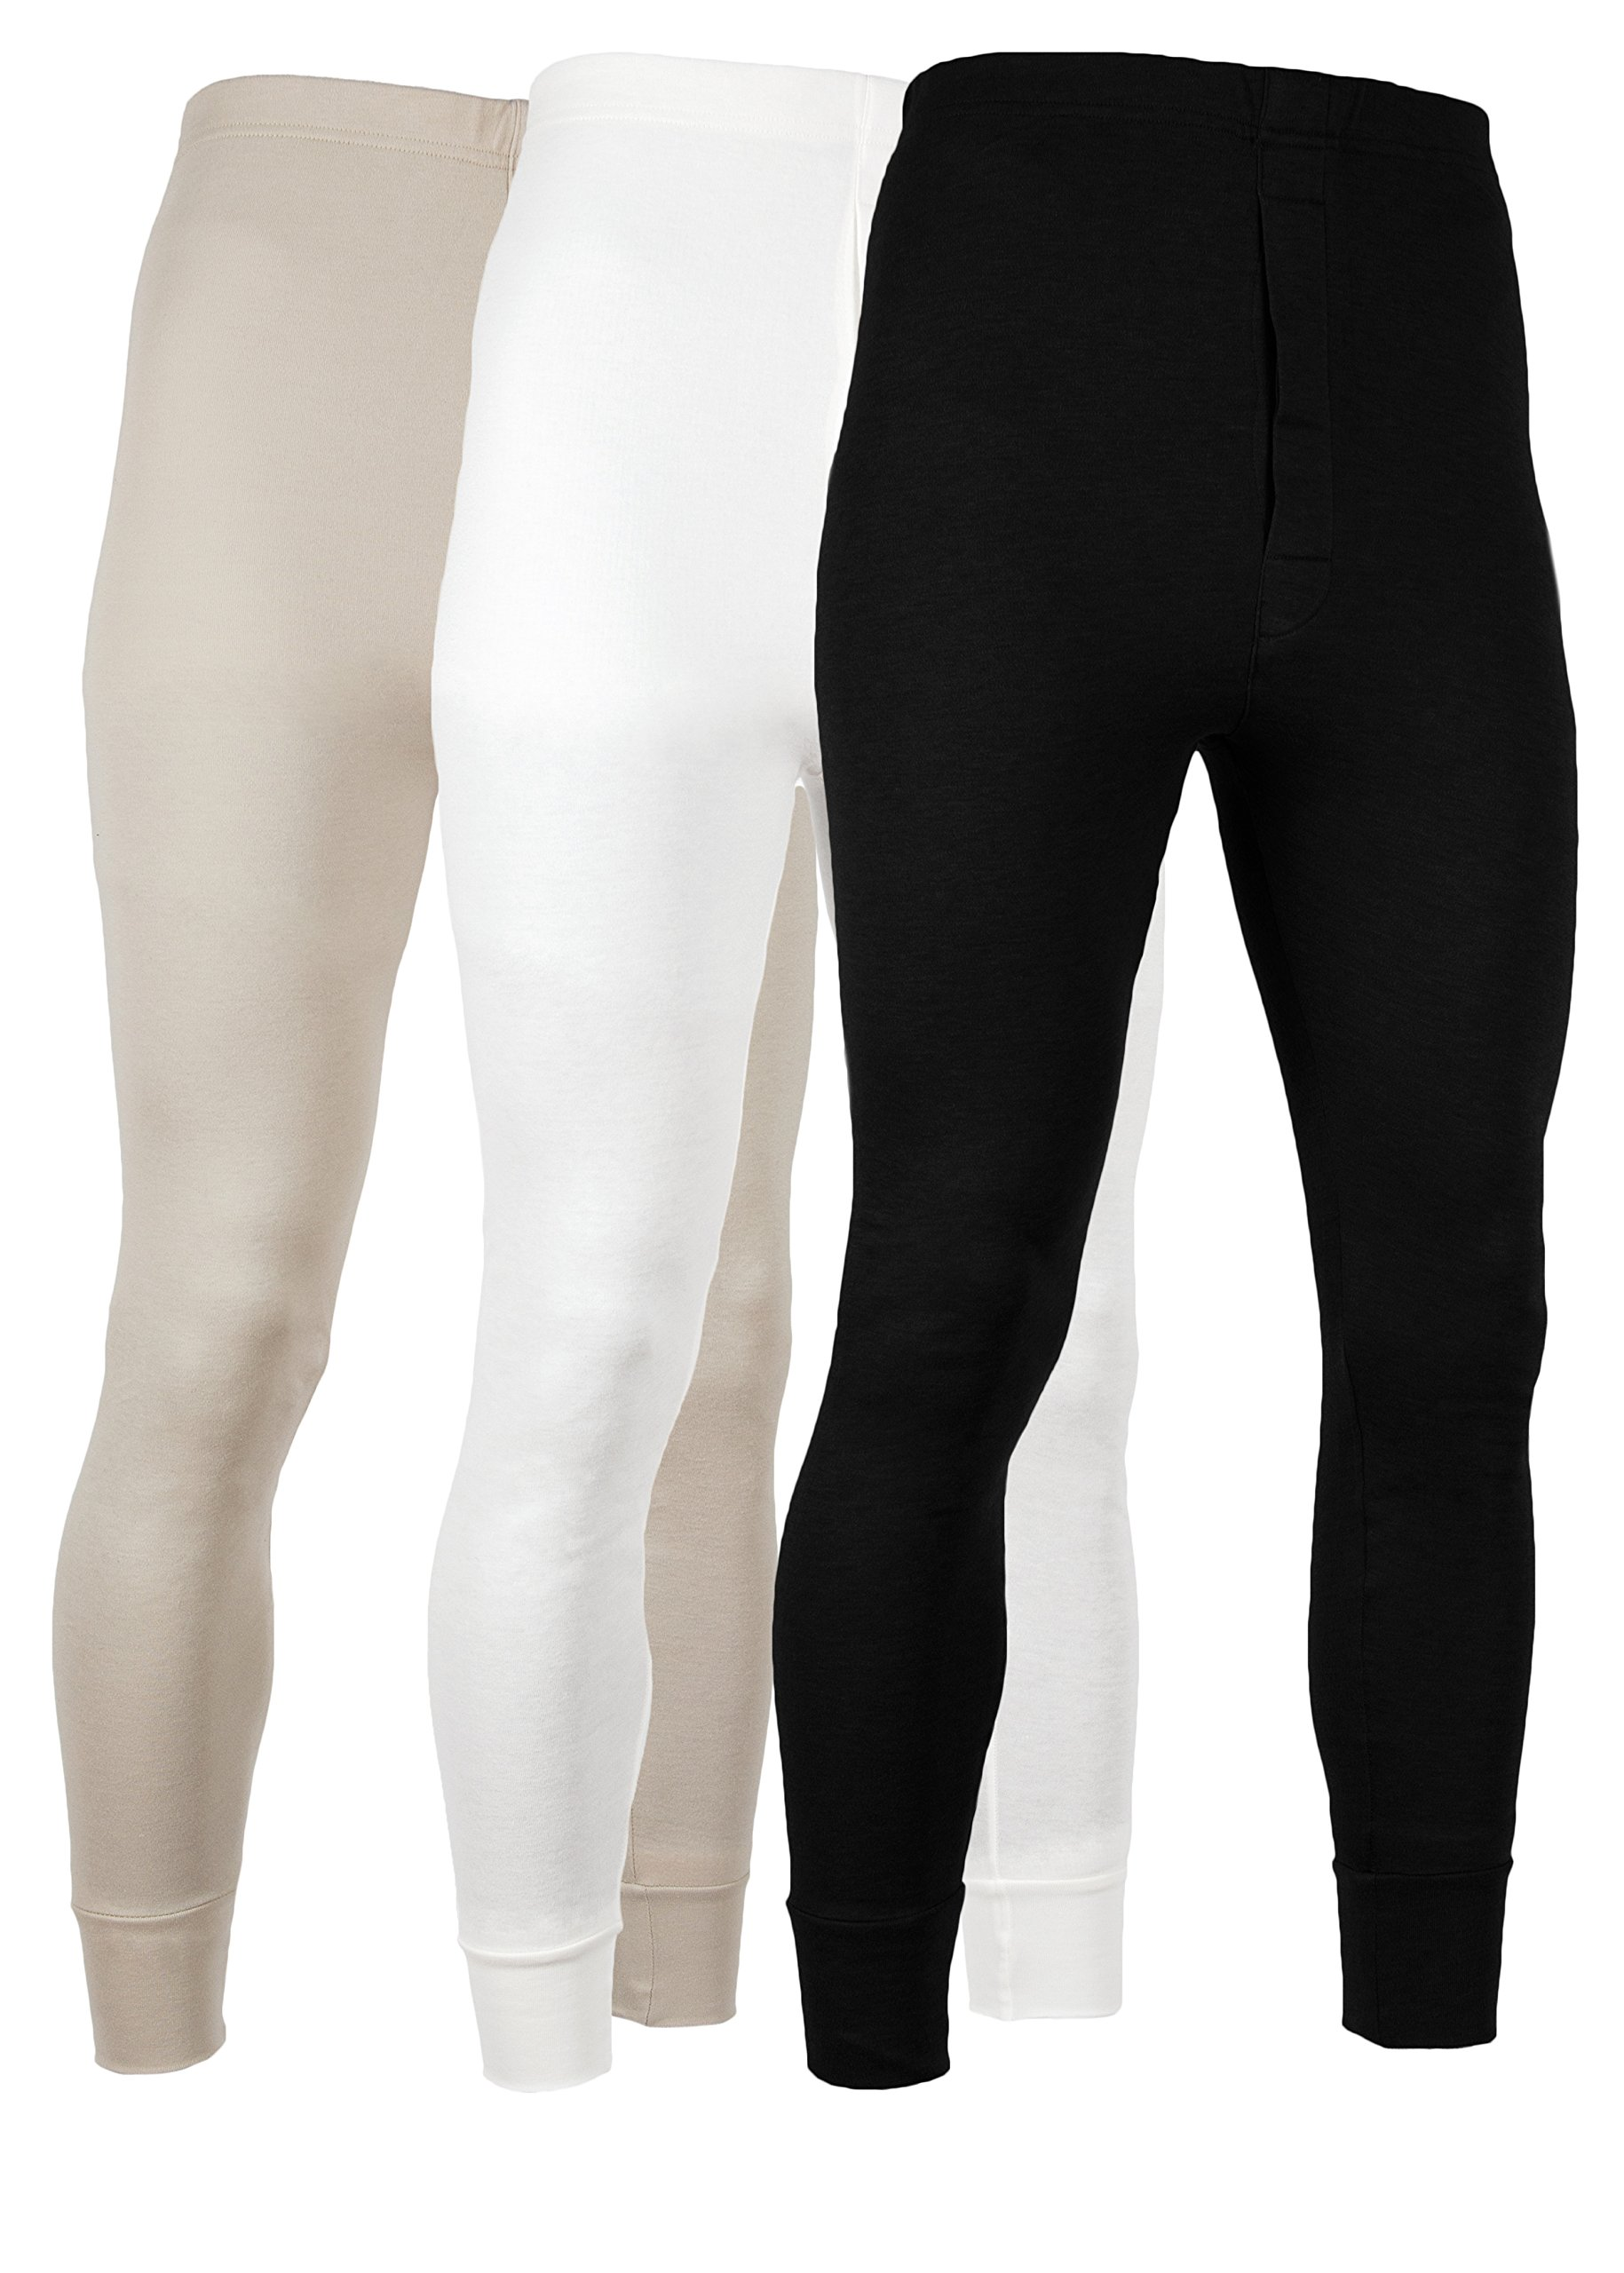 American Active Men's Long Johns Thermal Base Layer Pants 100% Cotton Fleece Lined Underwear -Pack Of 3 (3 Pack- Black/Cream/Sand, Medium)